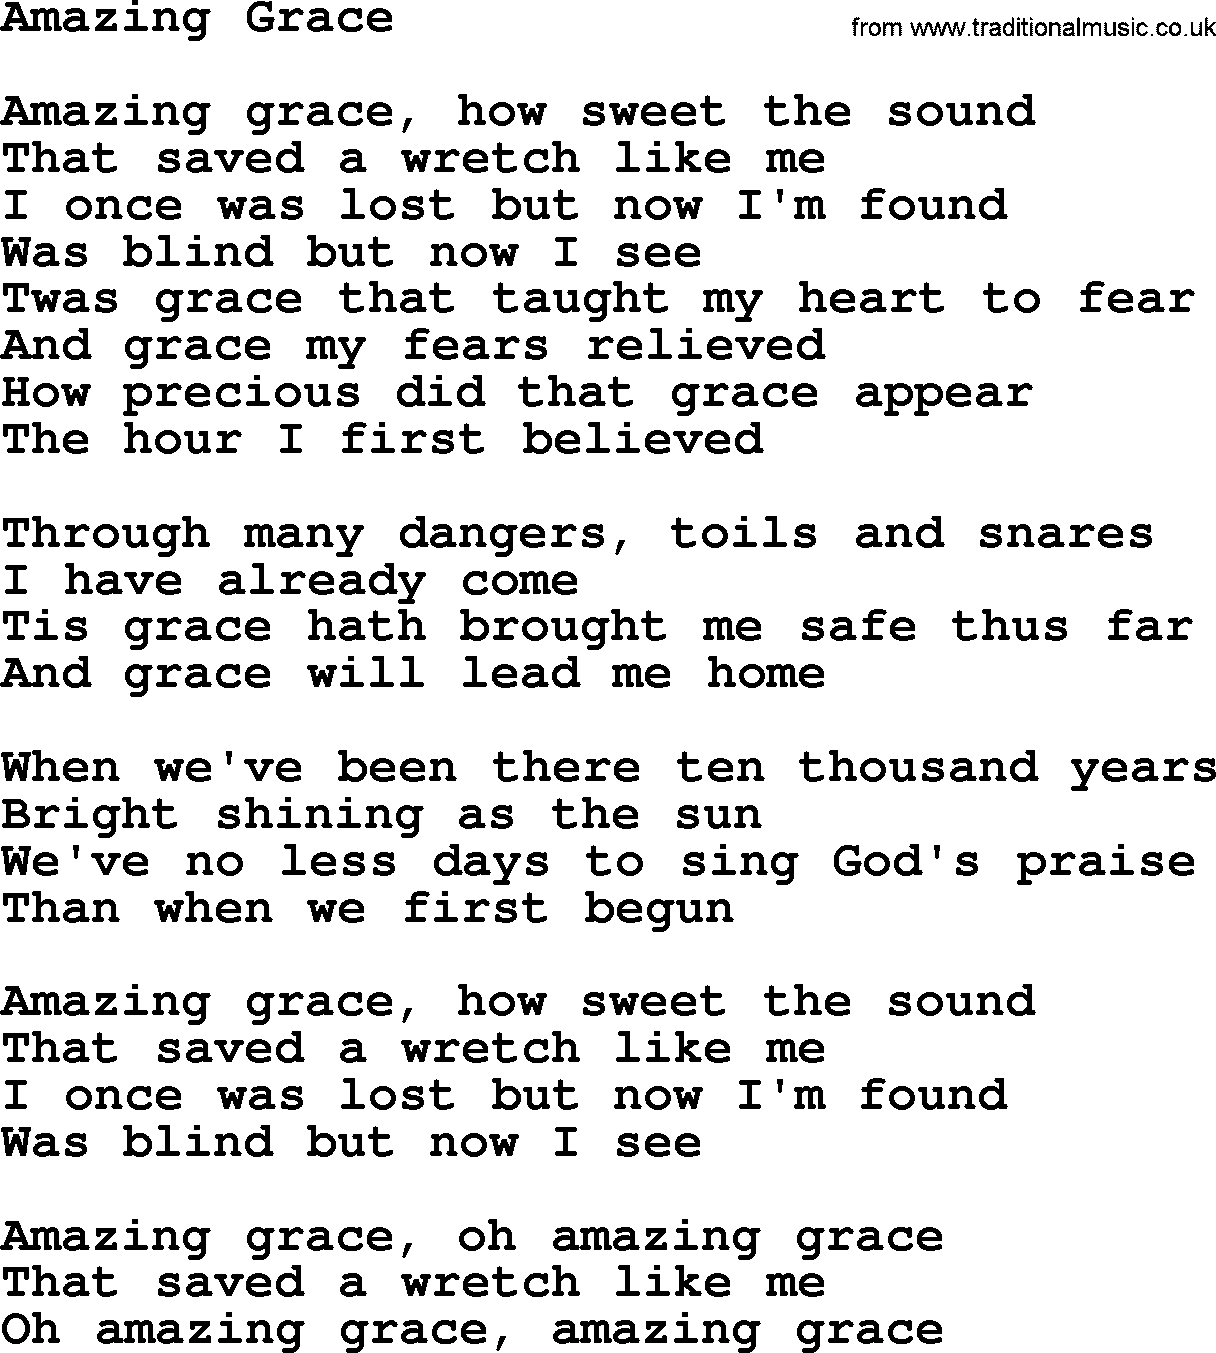 Amazing Grace Free Piano Sheet Music With Lyrics: [組圖+影片] 的最新詳盡資料** (必看!!) - Www.go2tutor.com